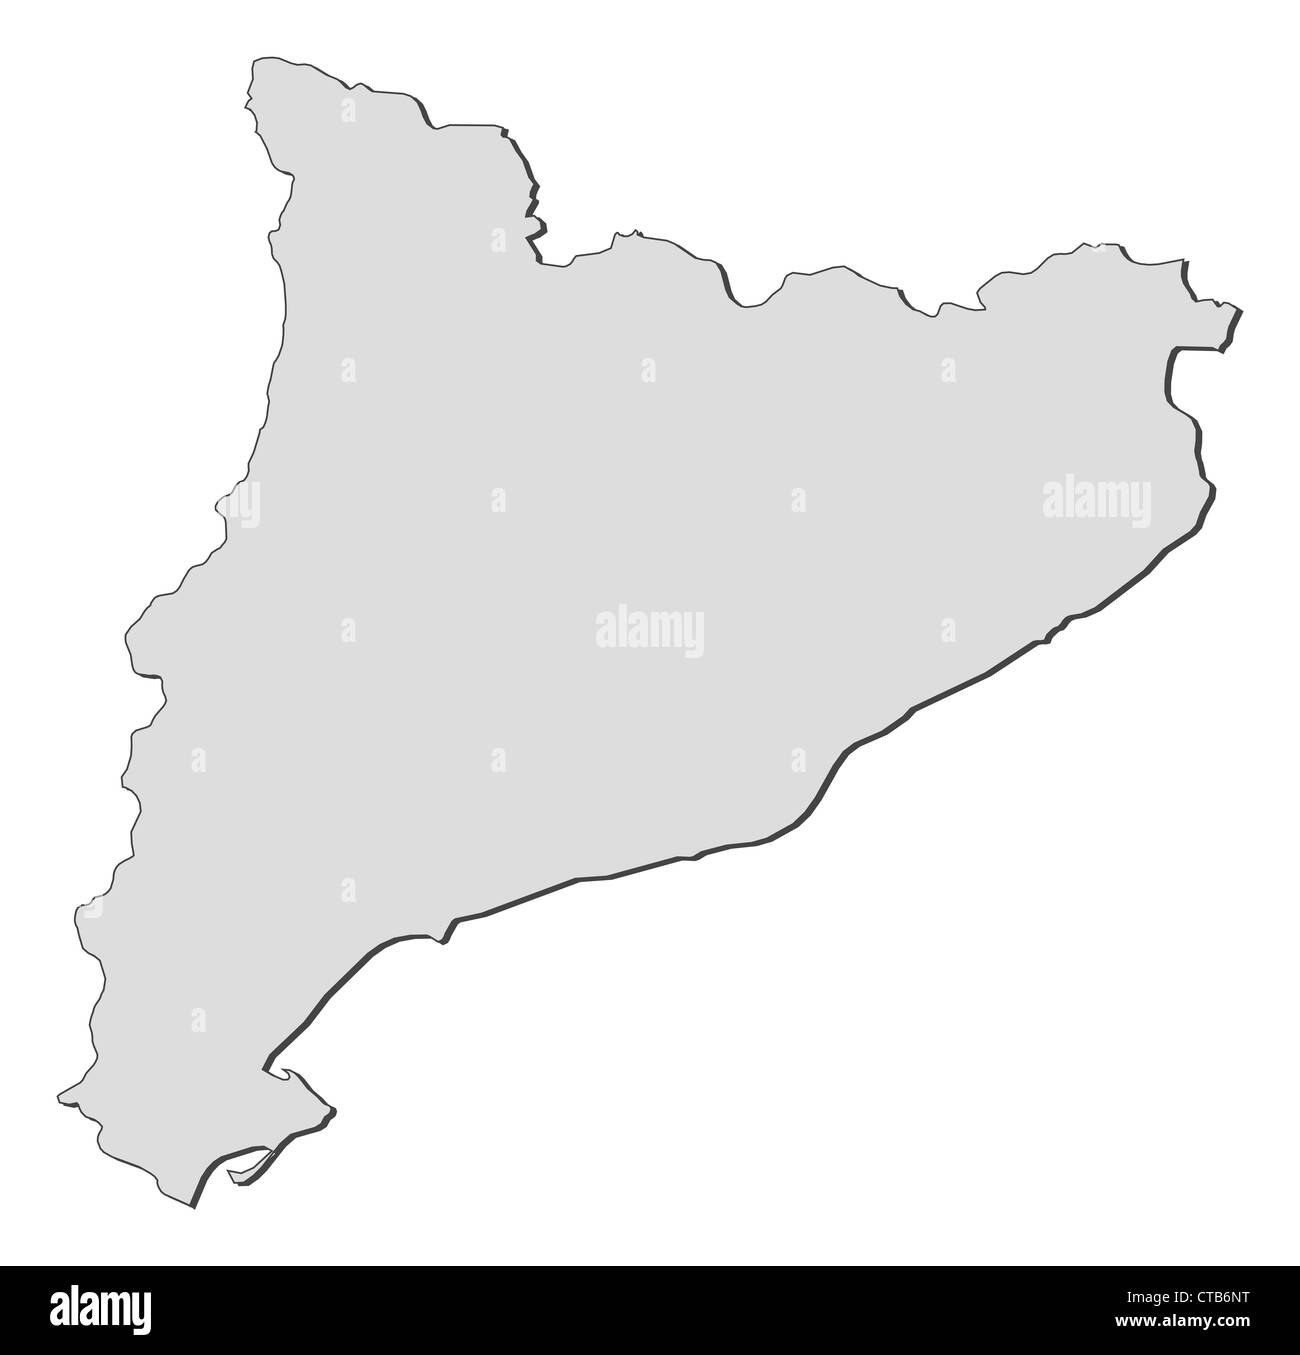 Map of Catalonia, a region of Spain. - Stock Image